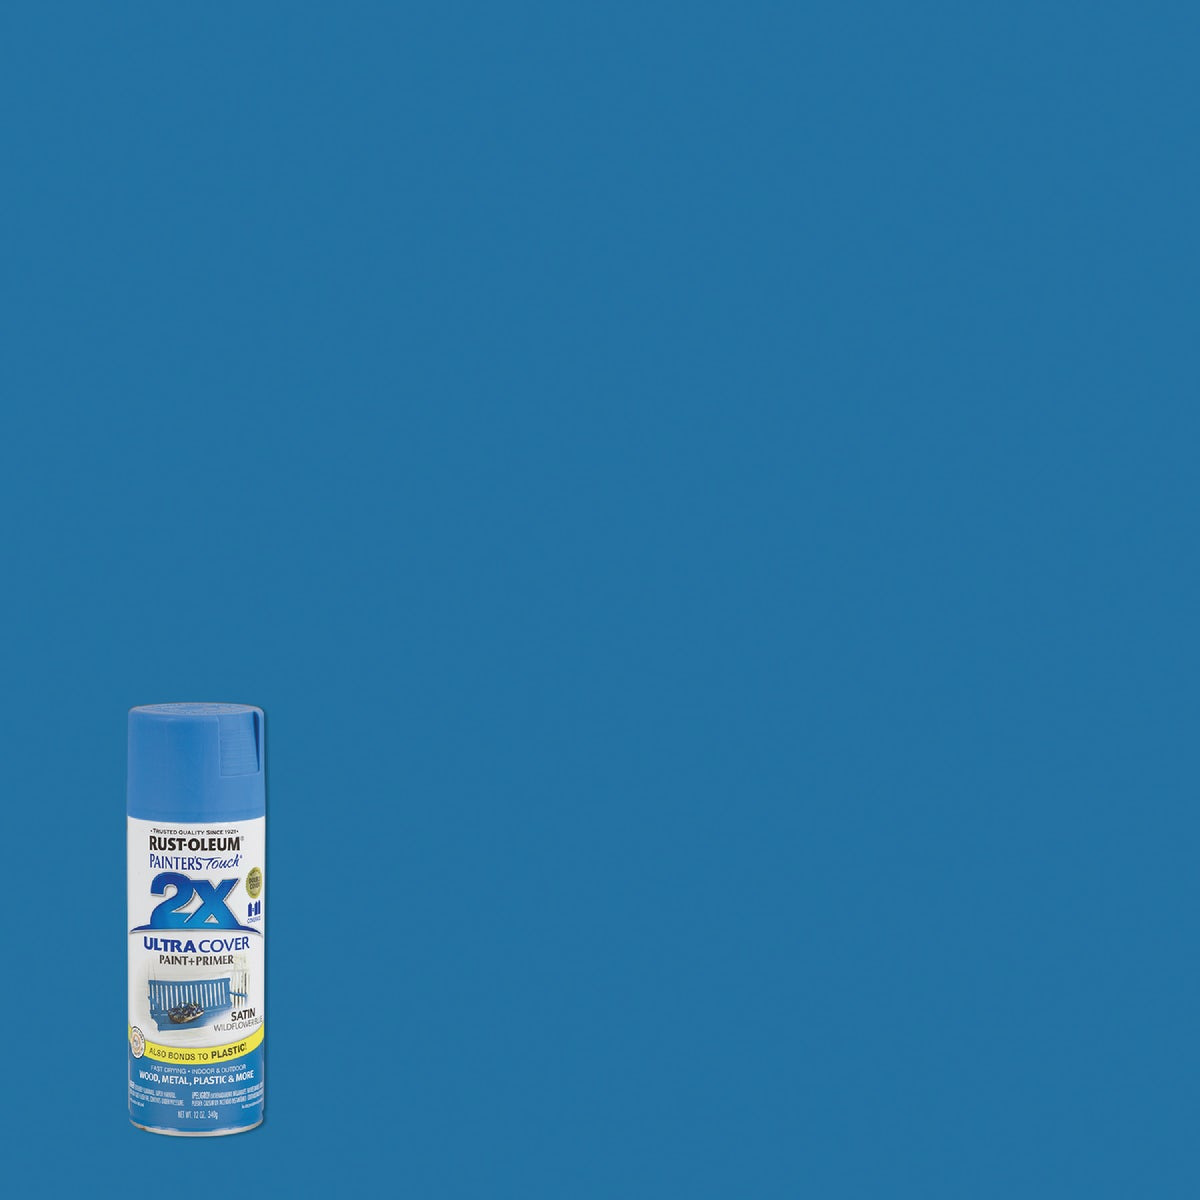 WILDFLWR BLU SPRAY PAINT - 249062 by Rustoleum